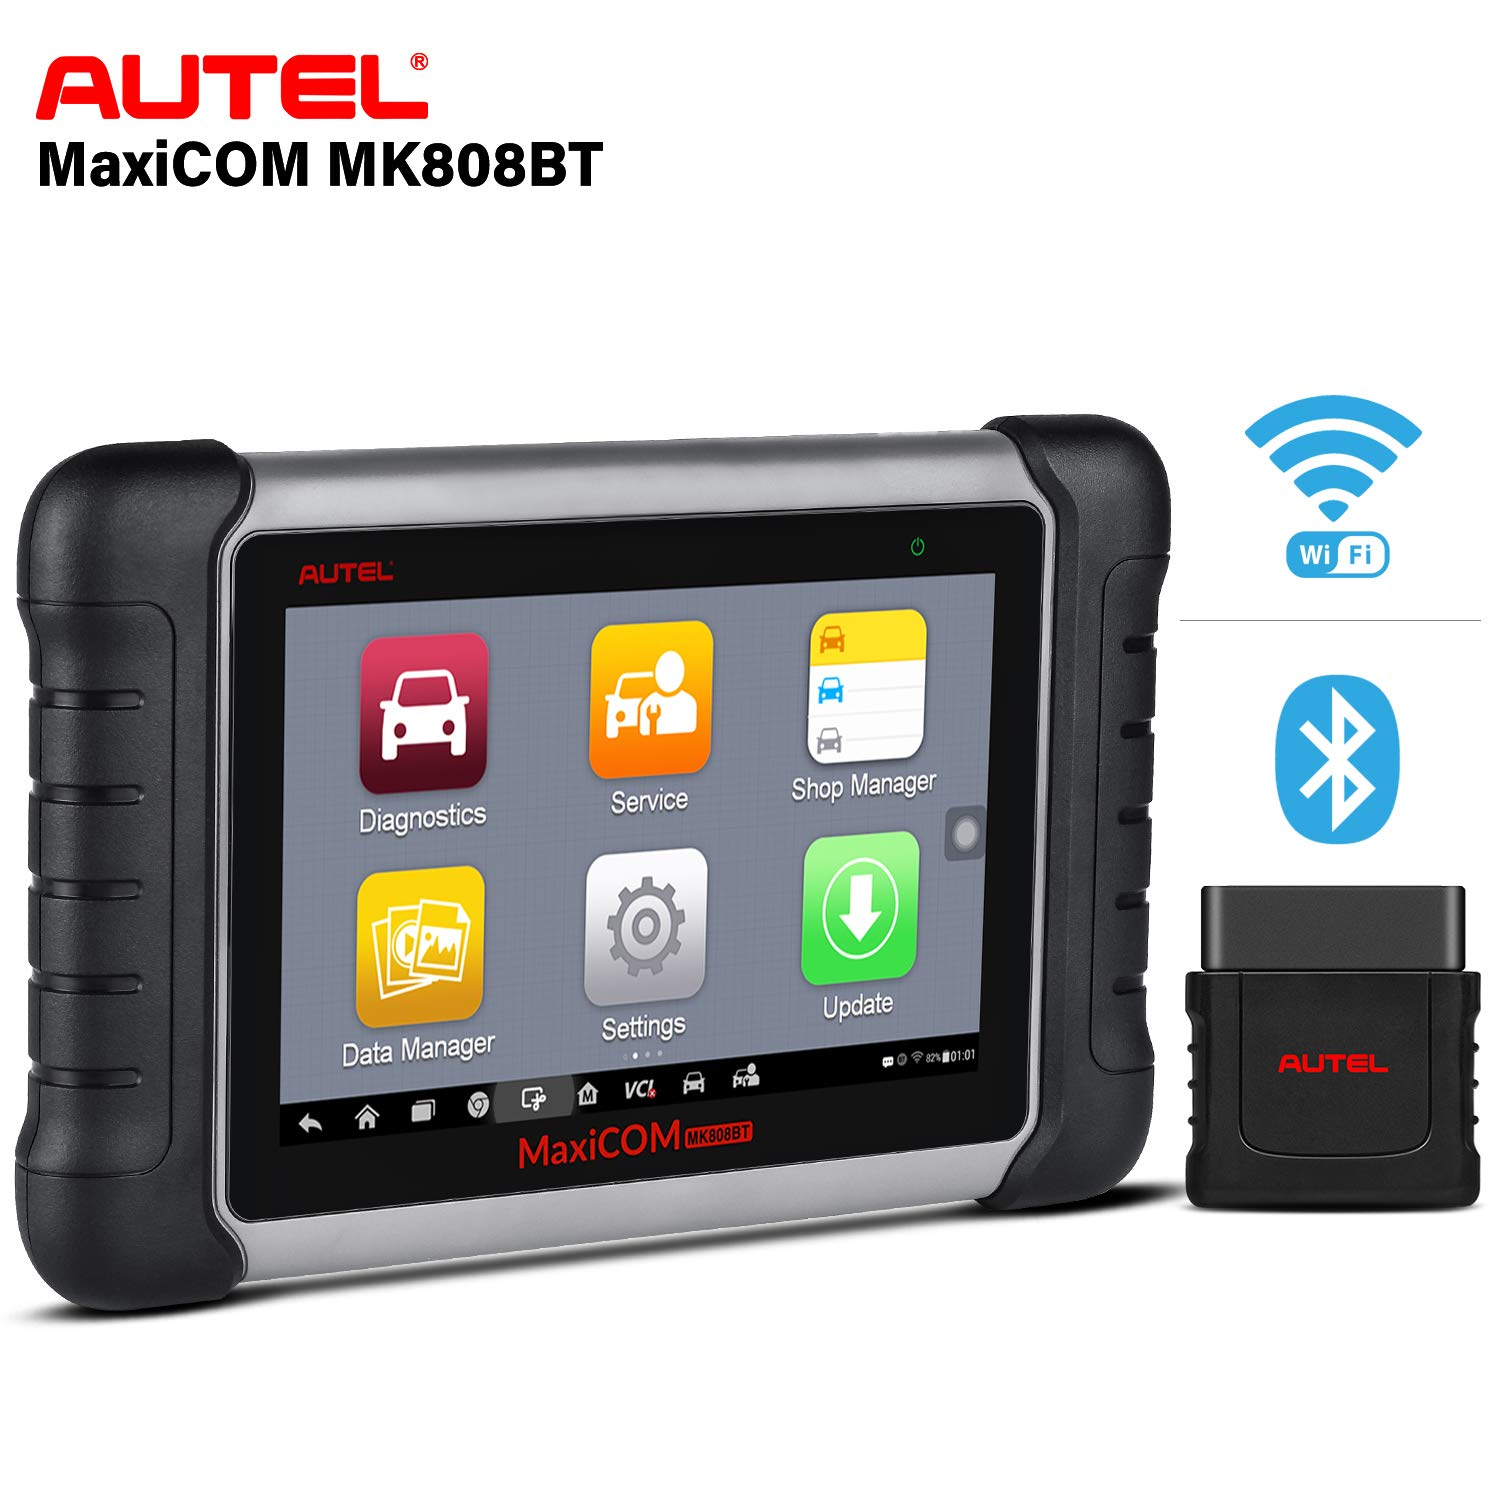 OBD2 WiFi Scanner OBDBOUTIK OB3021 Code Reader Check Engine Issue ELM327 Interface Wireless OBD-II Reader For IOS iPhone iPad and Android